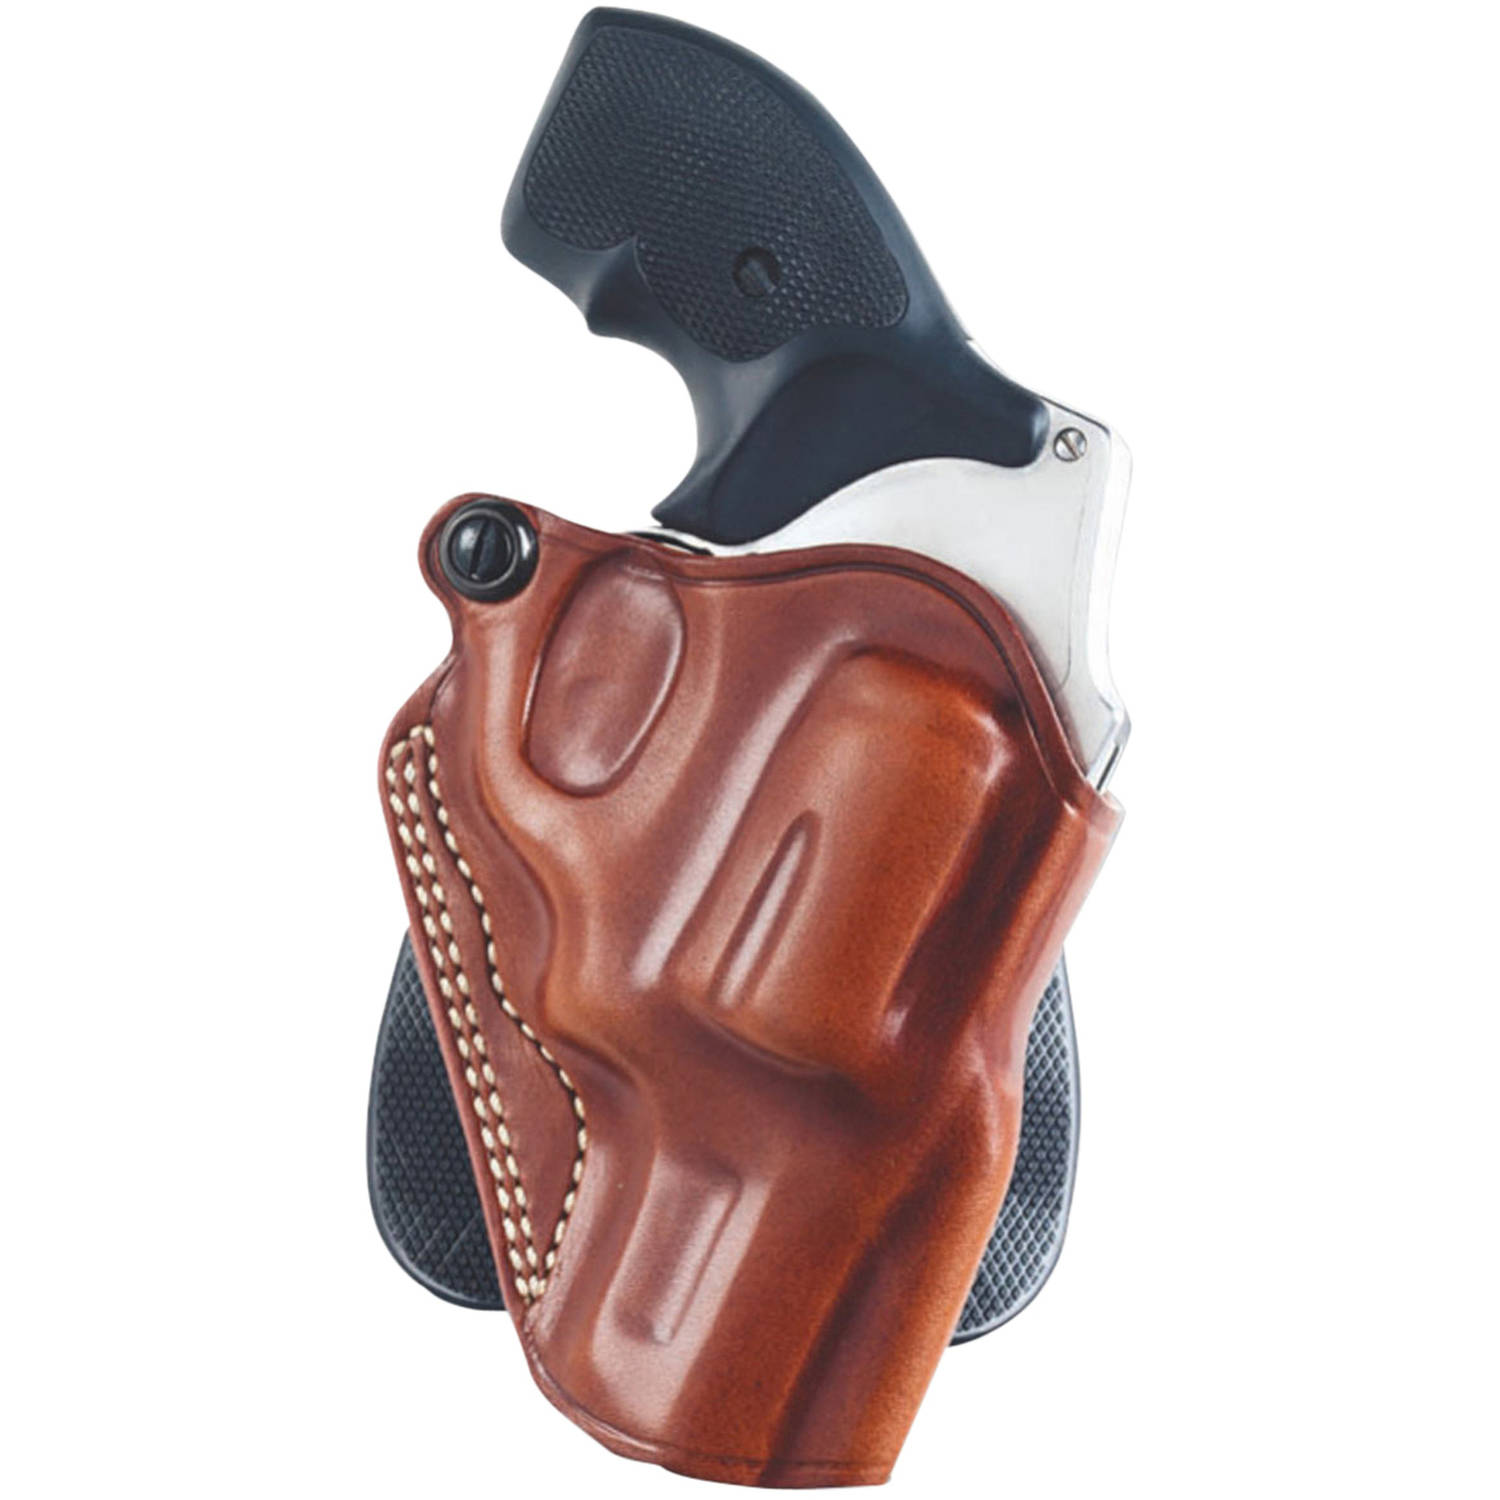 "Galco SPD604 Speed Paddle RH Fits Belts up to 1.75"" Tan Saddle Leather by GALCO INTERNATIONAL"